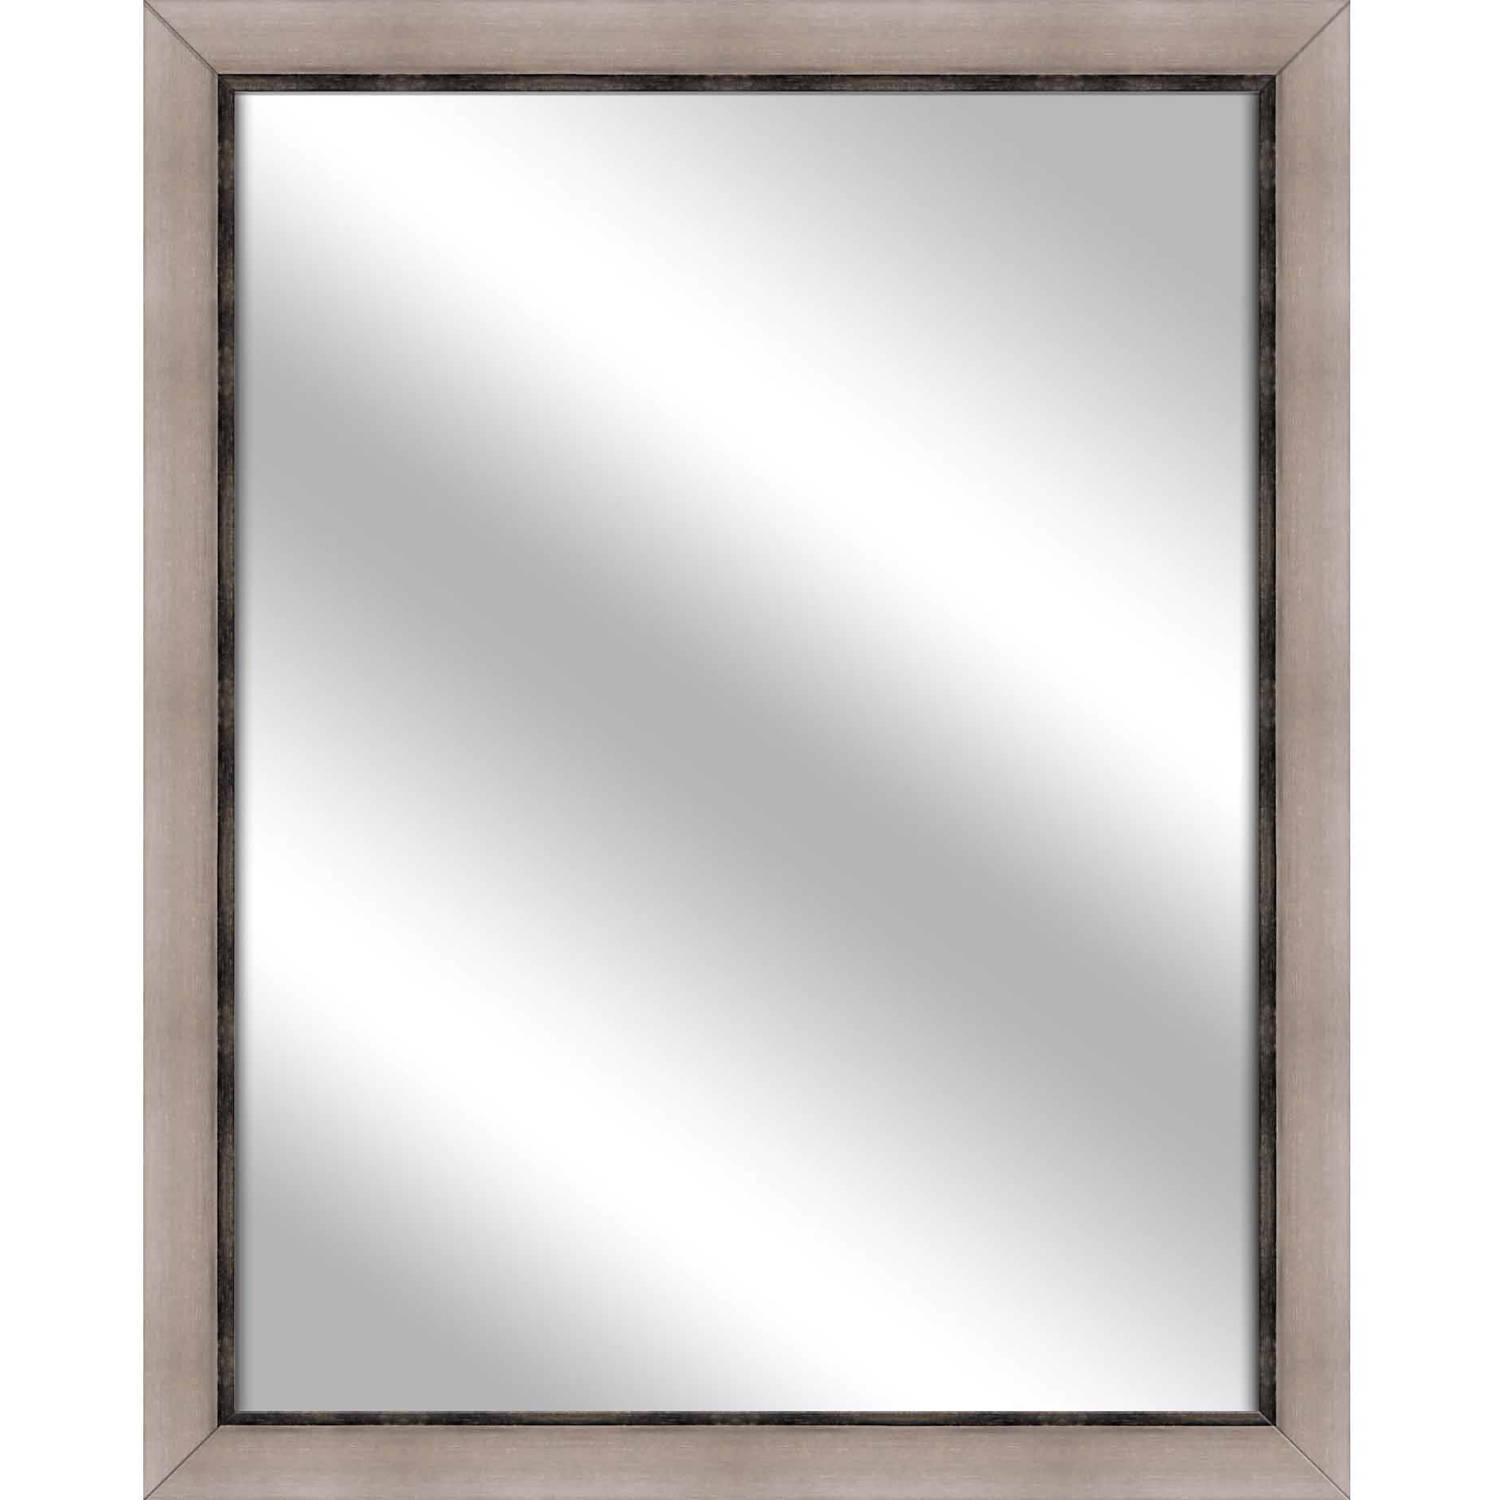 Vanity Mirror, Champagne, 24.75x30.75 by PTM Images